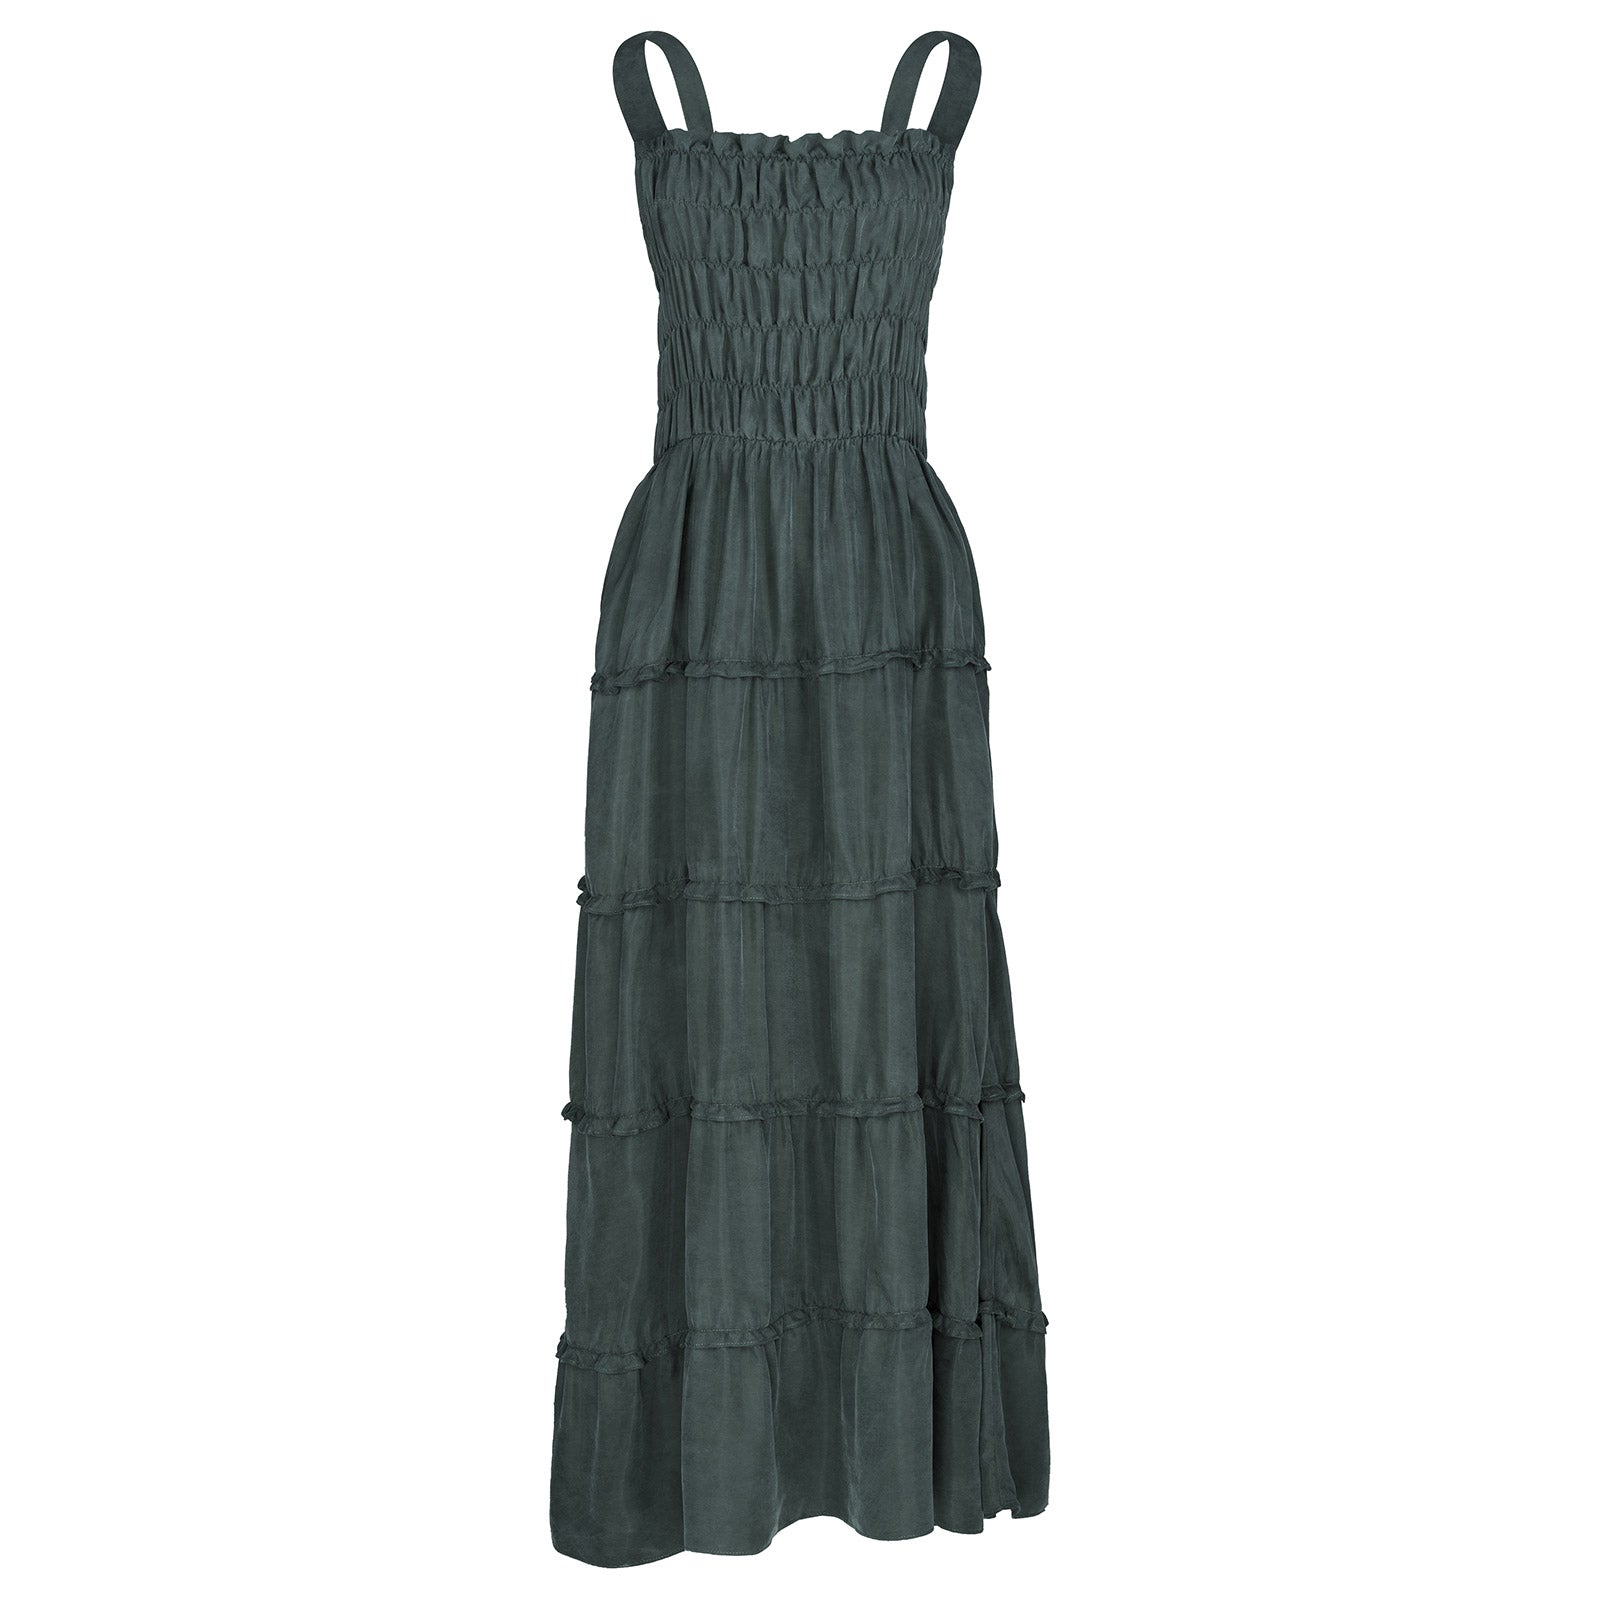 THE CYNTHIA DRESS